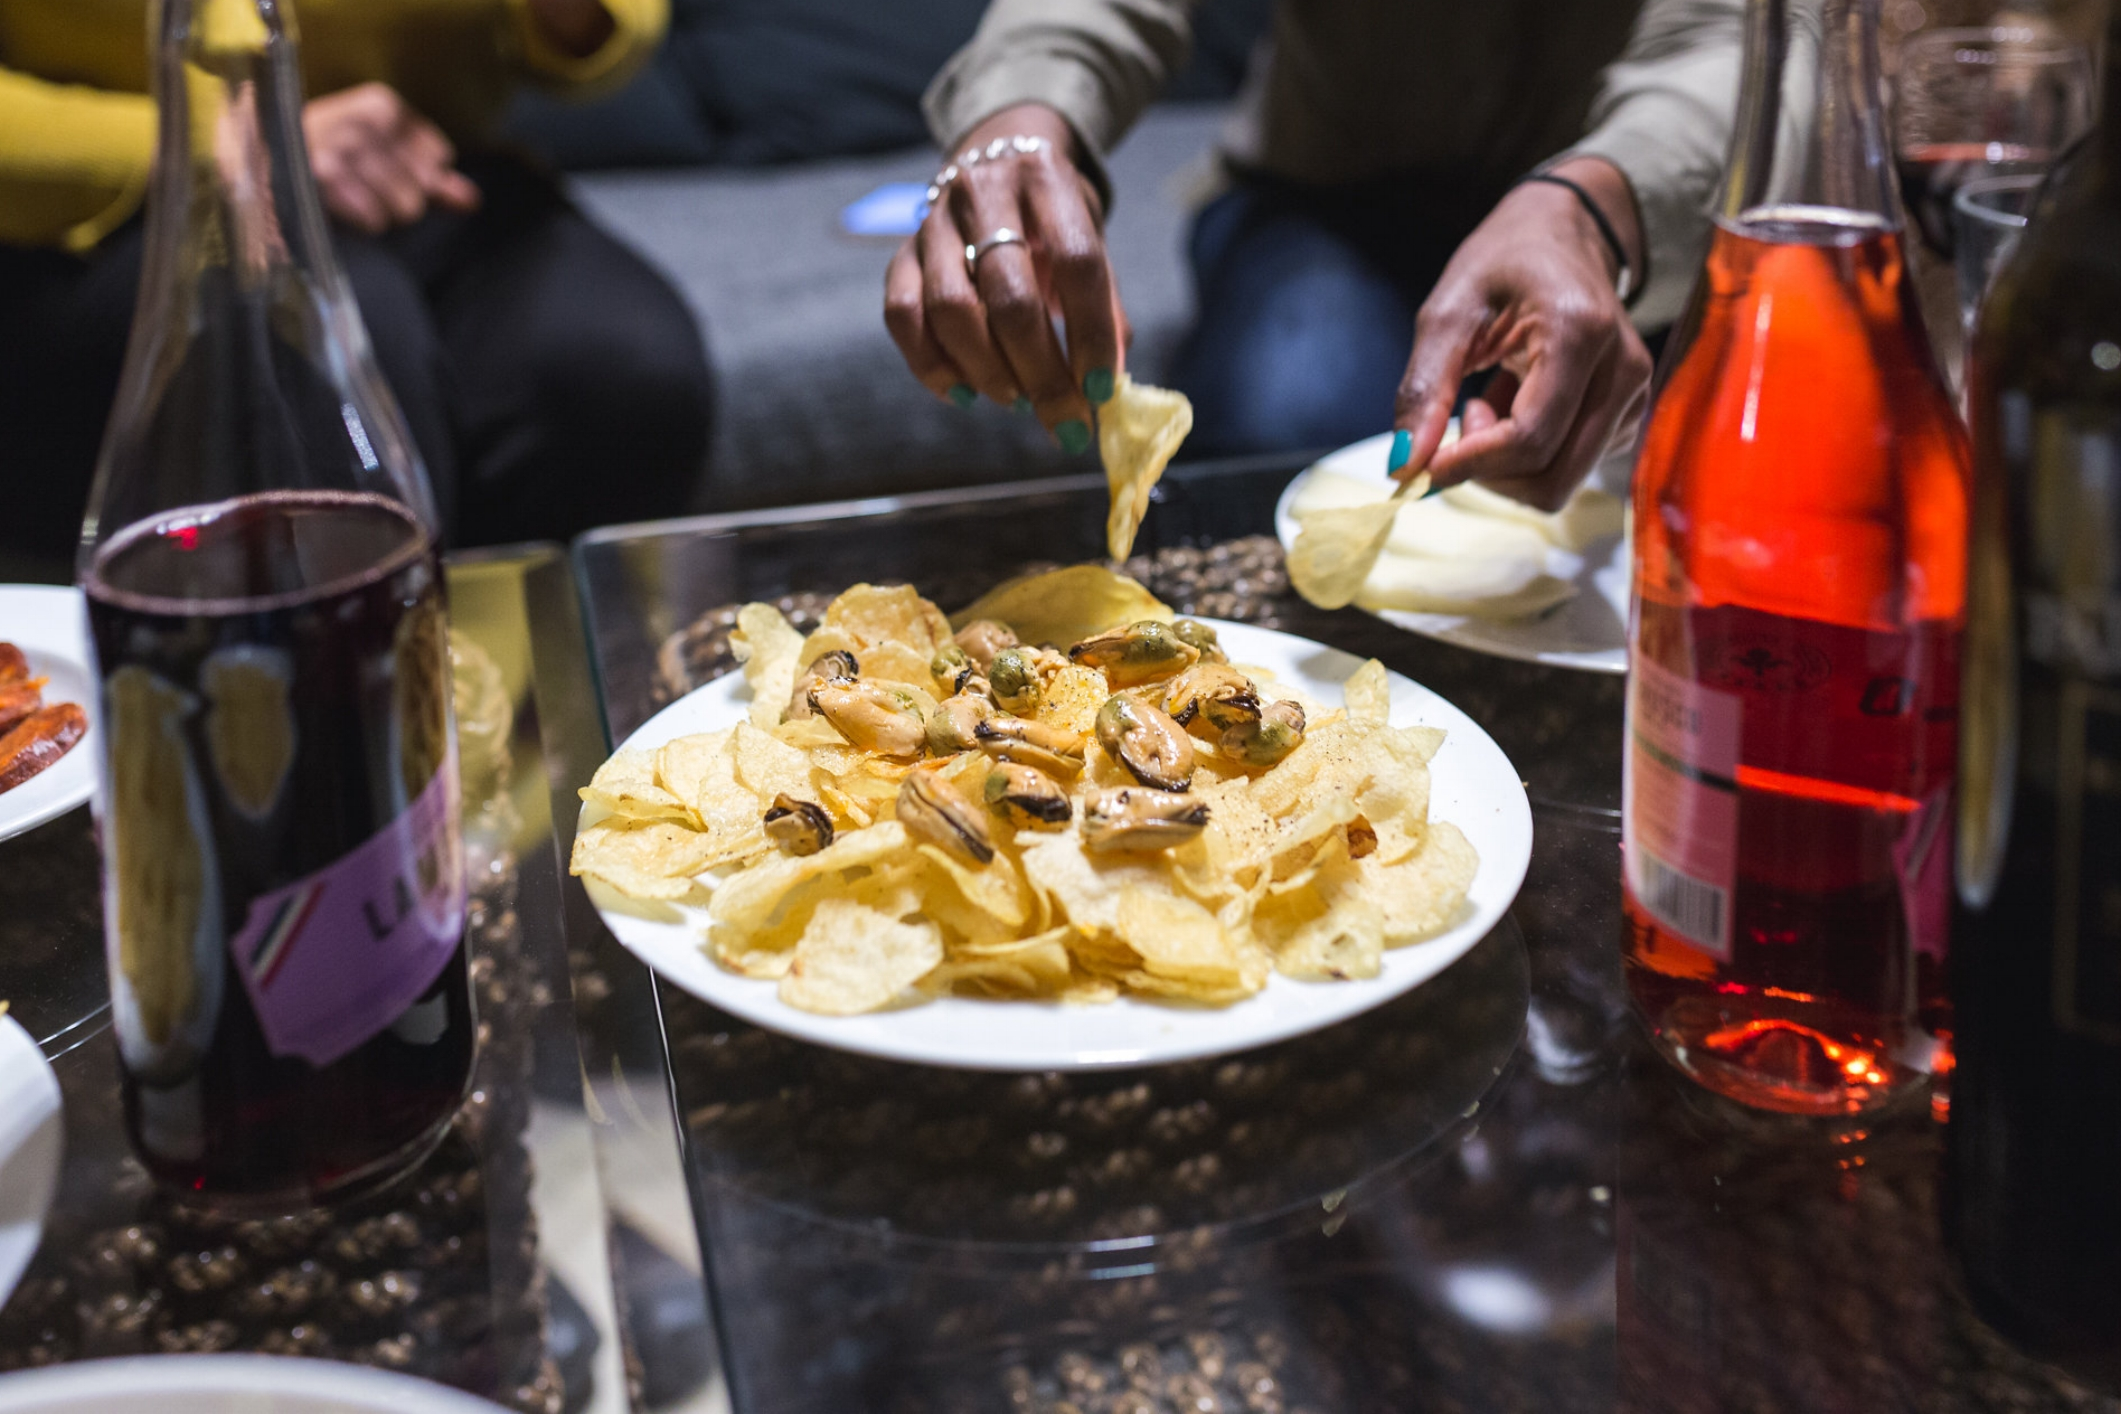 Mejillones en escabeche  on top of potato chips and sprinkled with salt and pepper (Photo by Tanya Weekes)